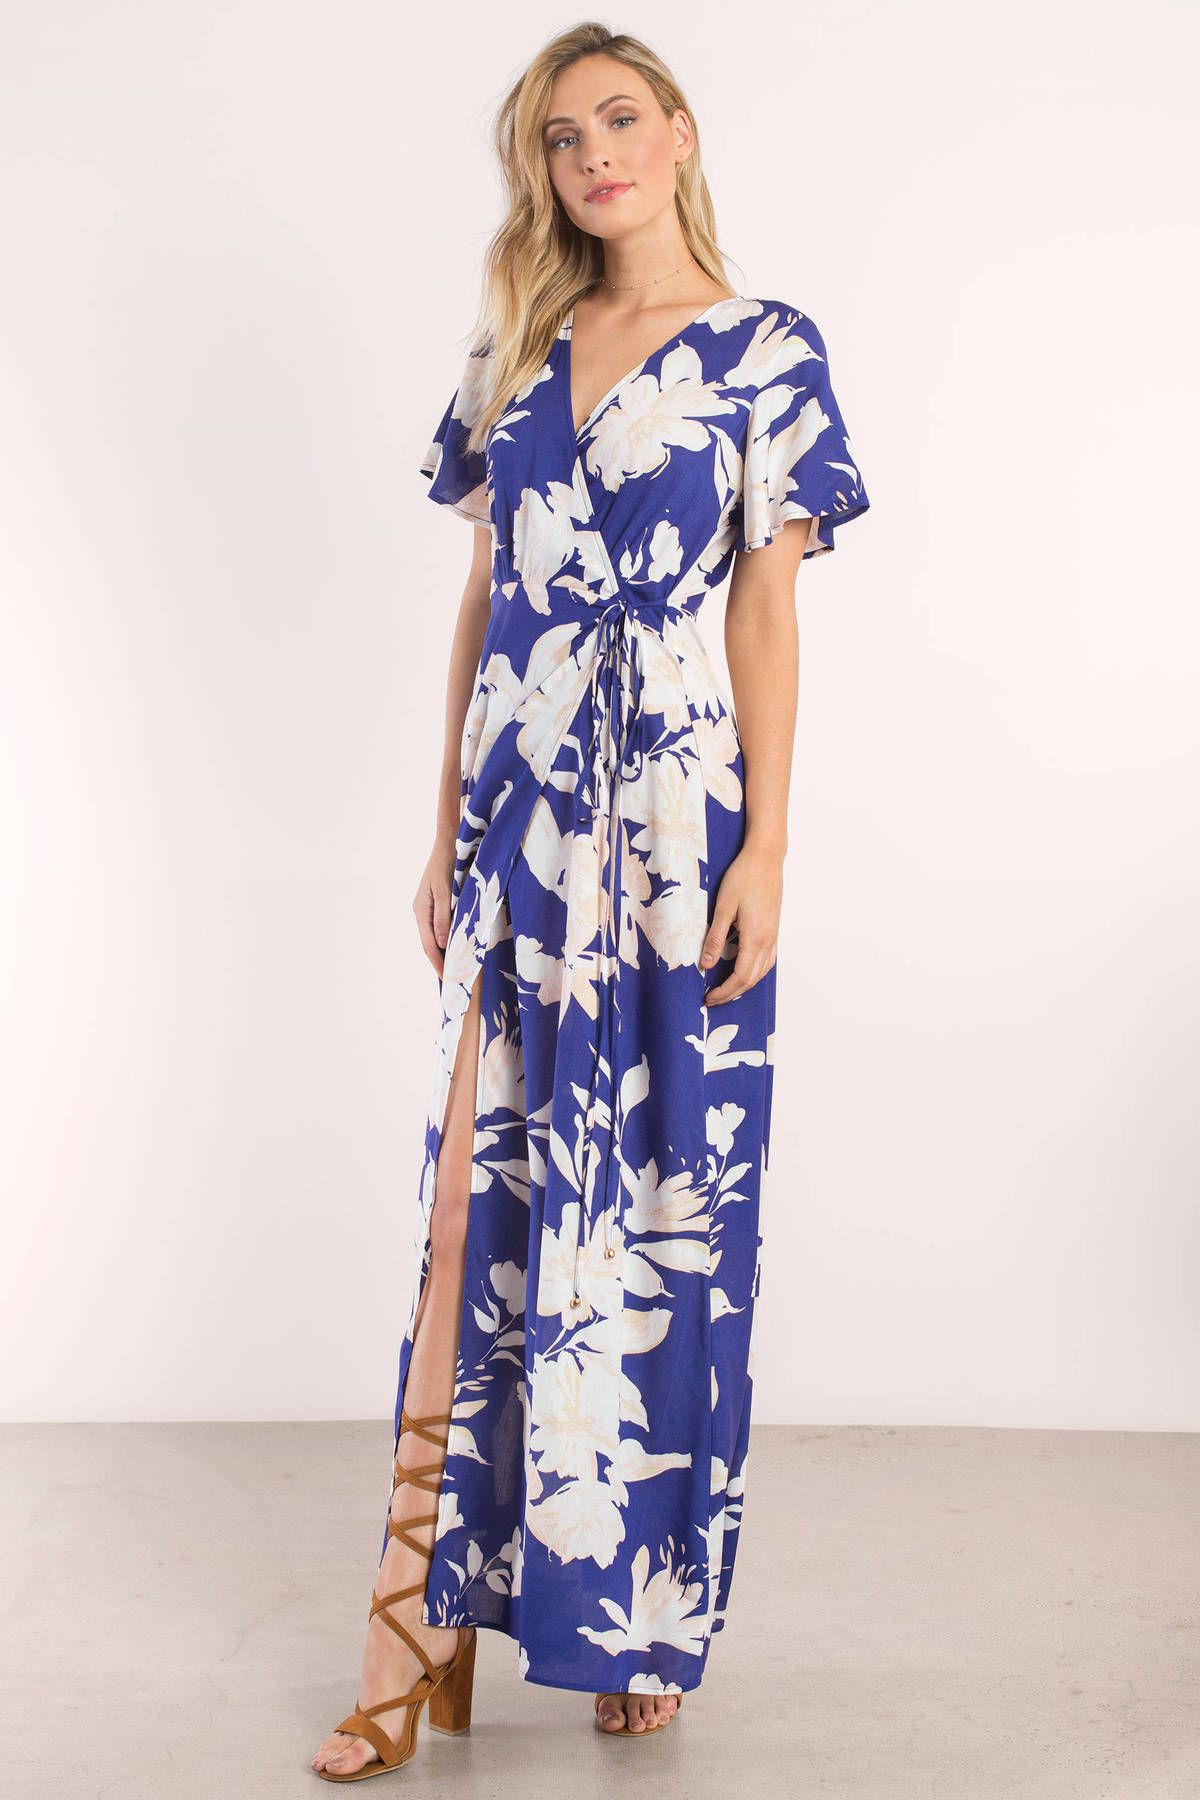 Get dolled up in the leena floral print maxi dress featuring an